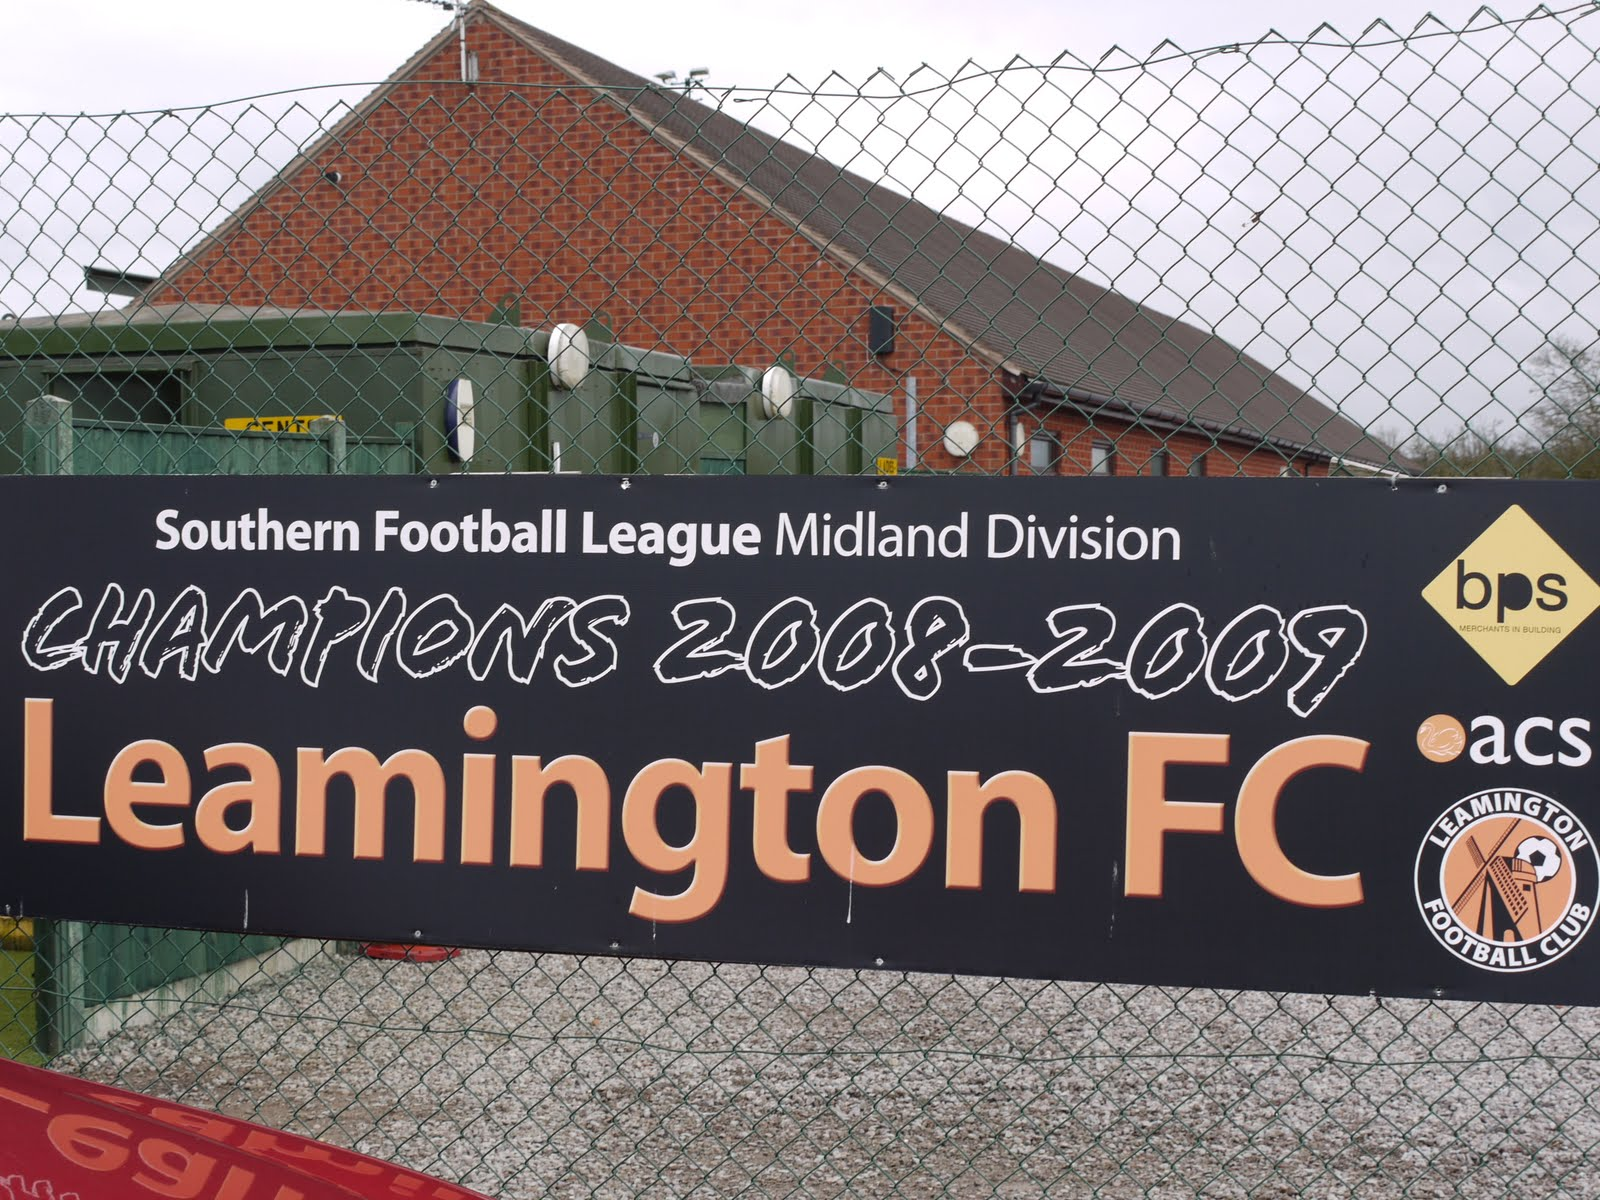 Reynard's Hunting Grounds: Game 54 - Leamington v Halesowen Town